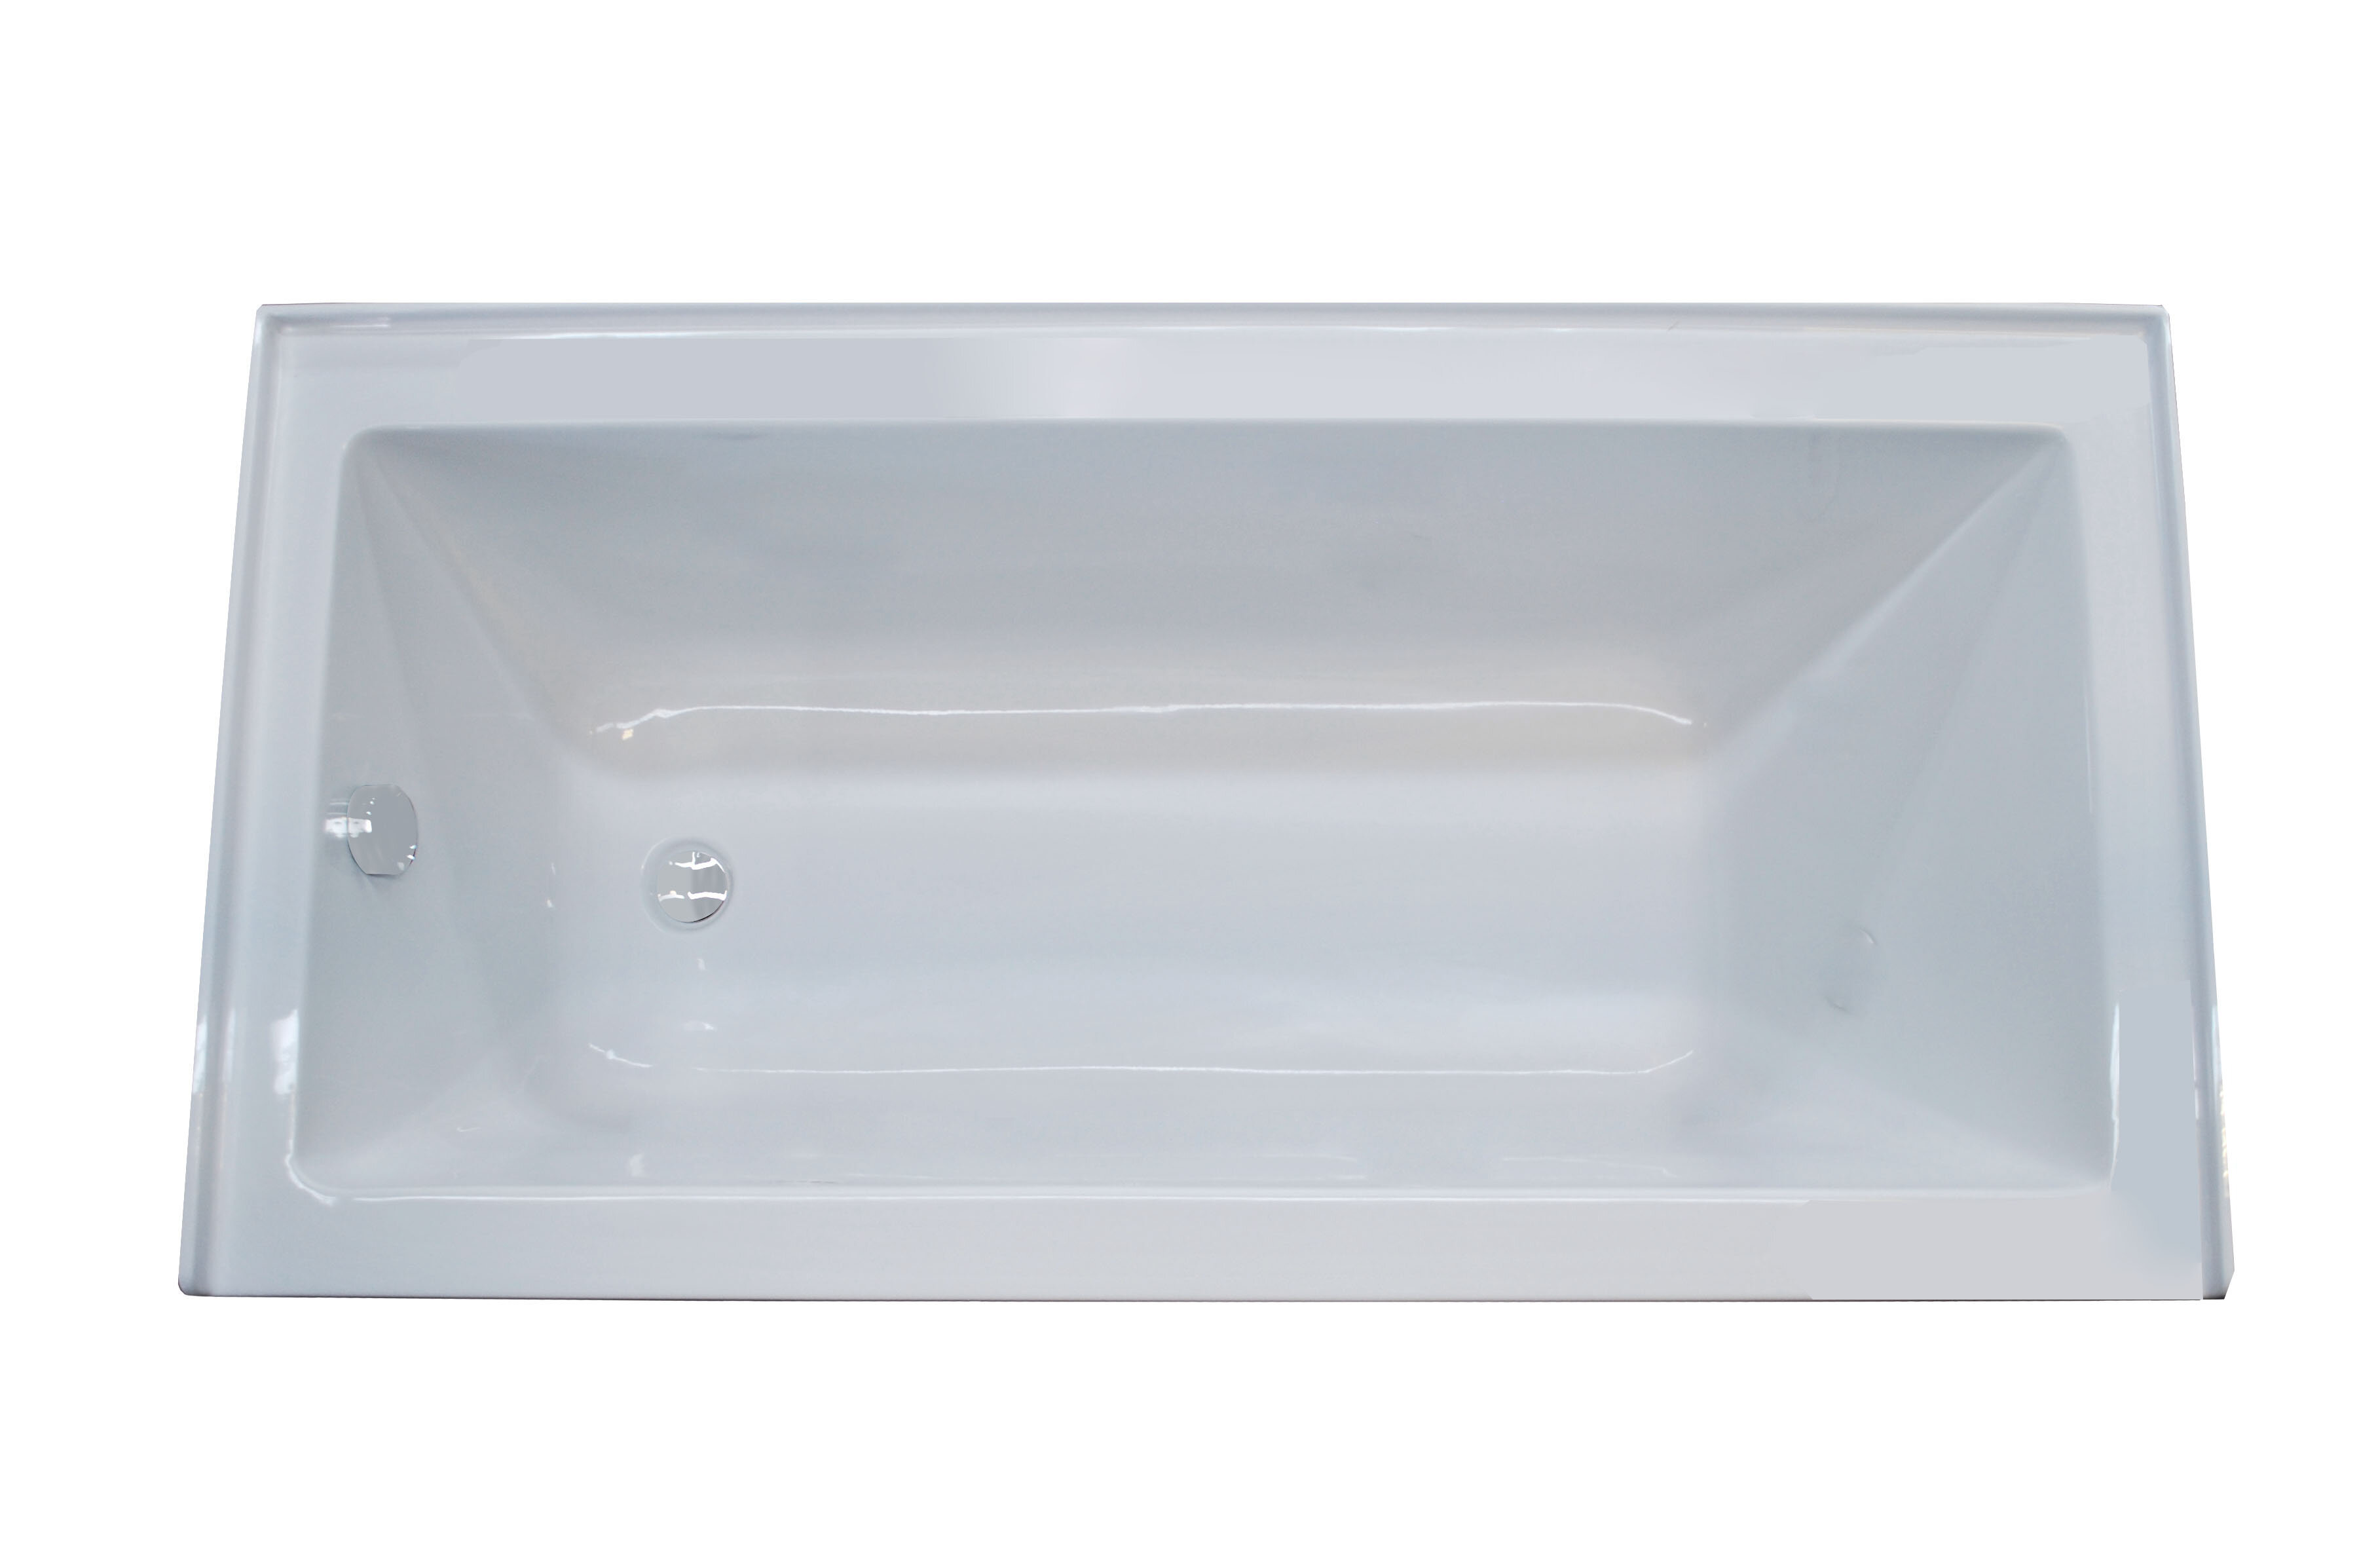 x bathtub shipping overstock cast inch slipper home today double garden iron free product clawfoot